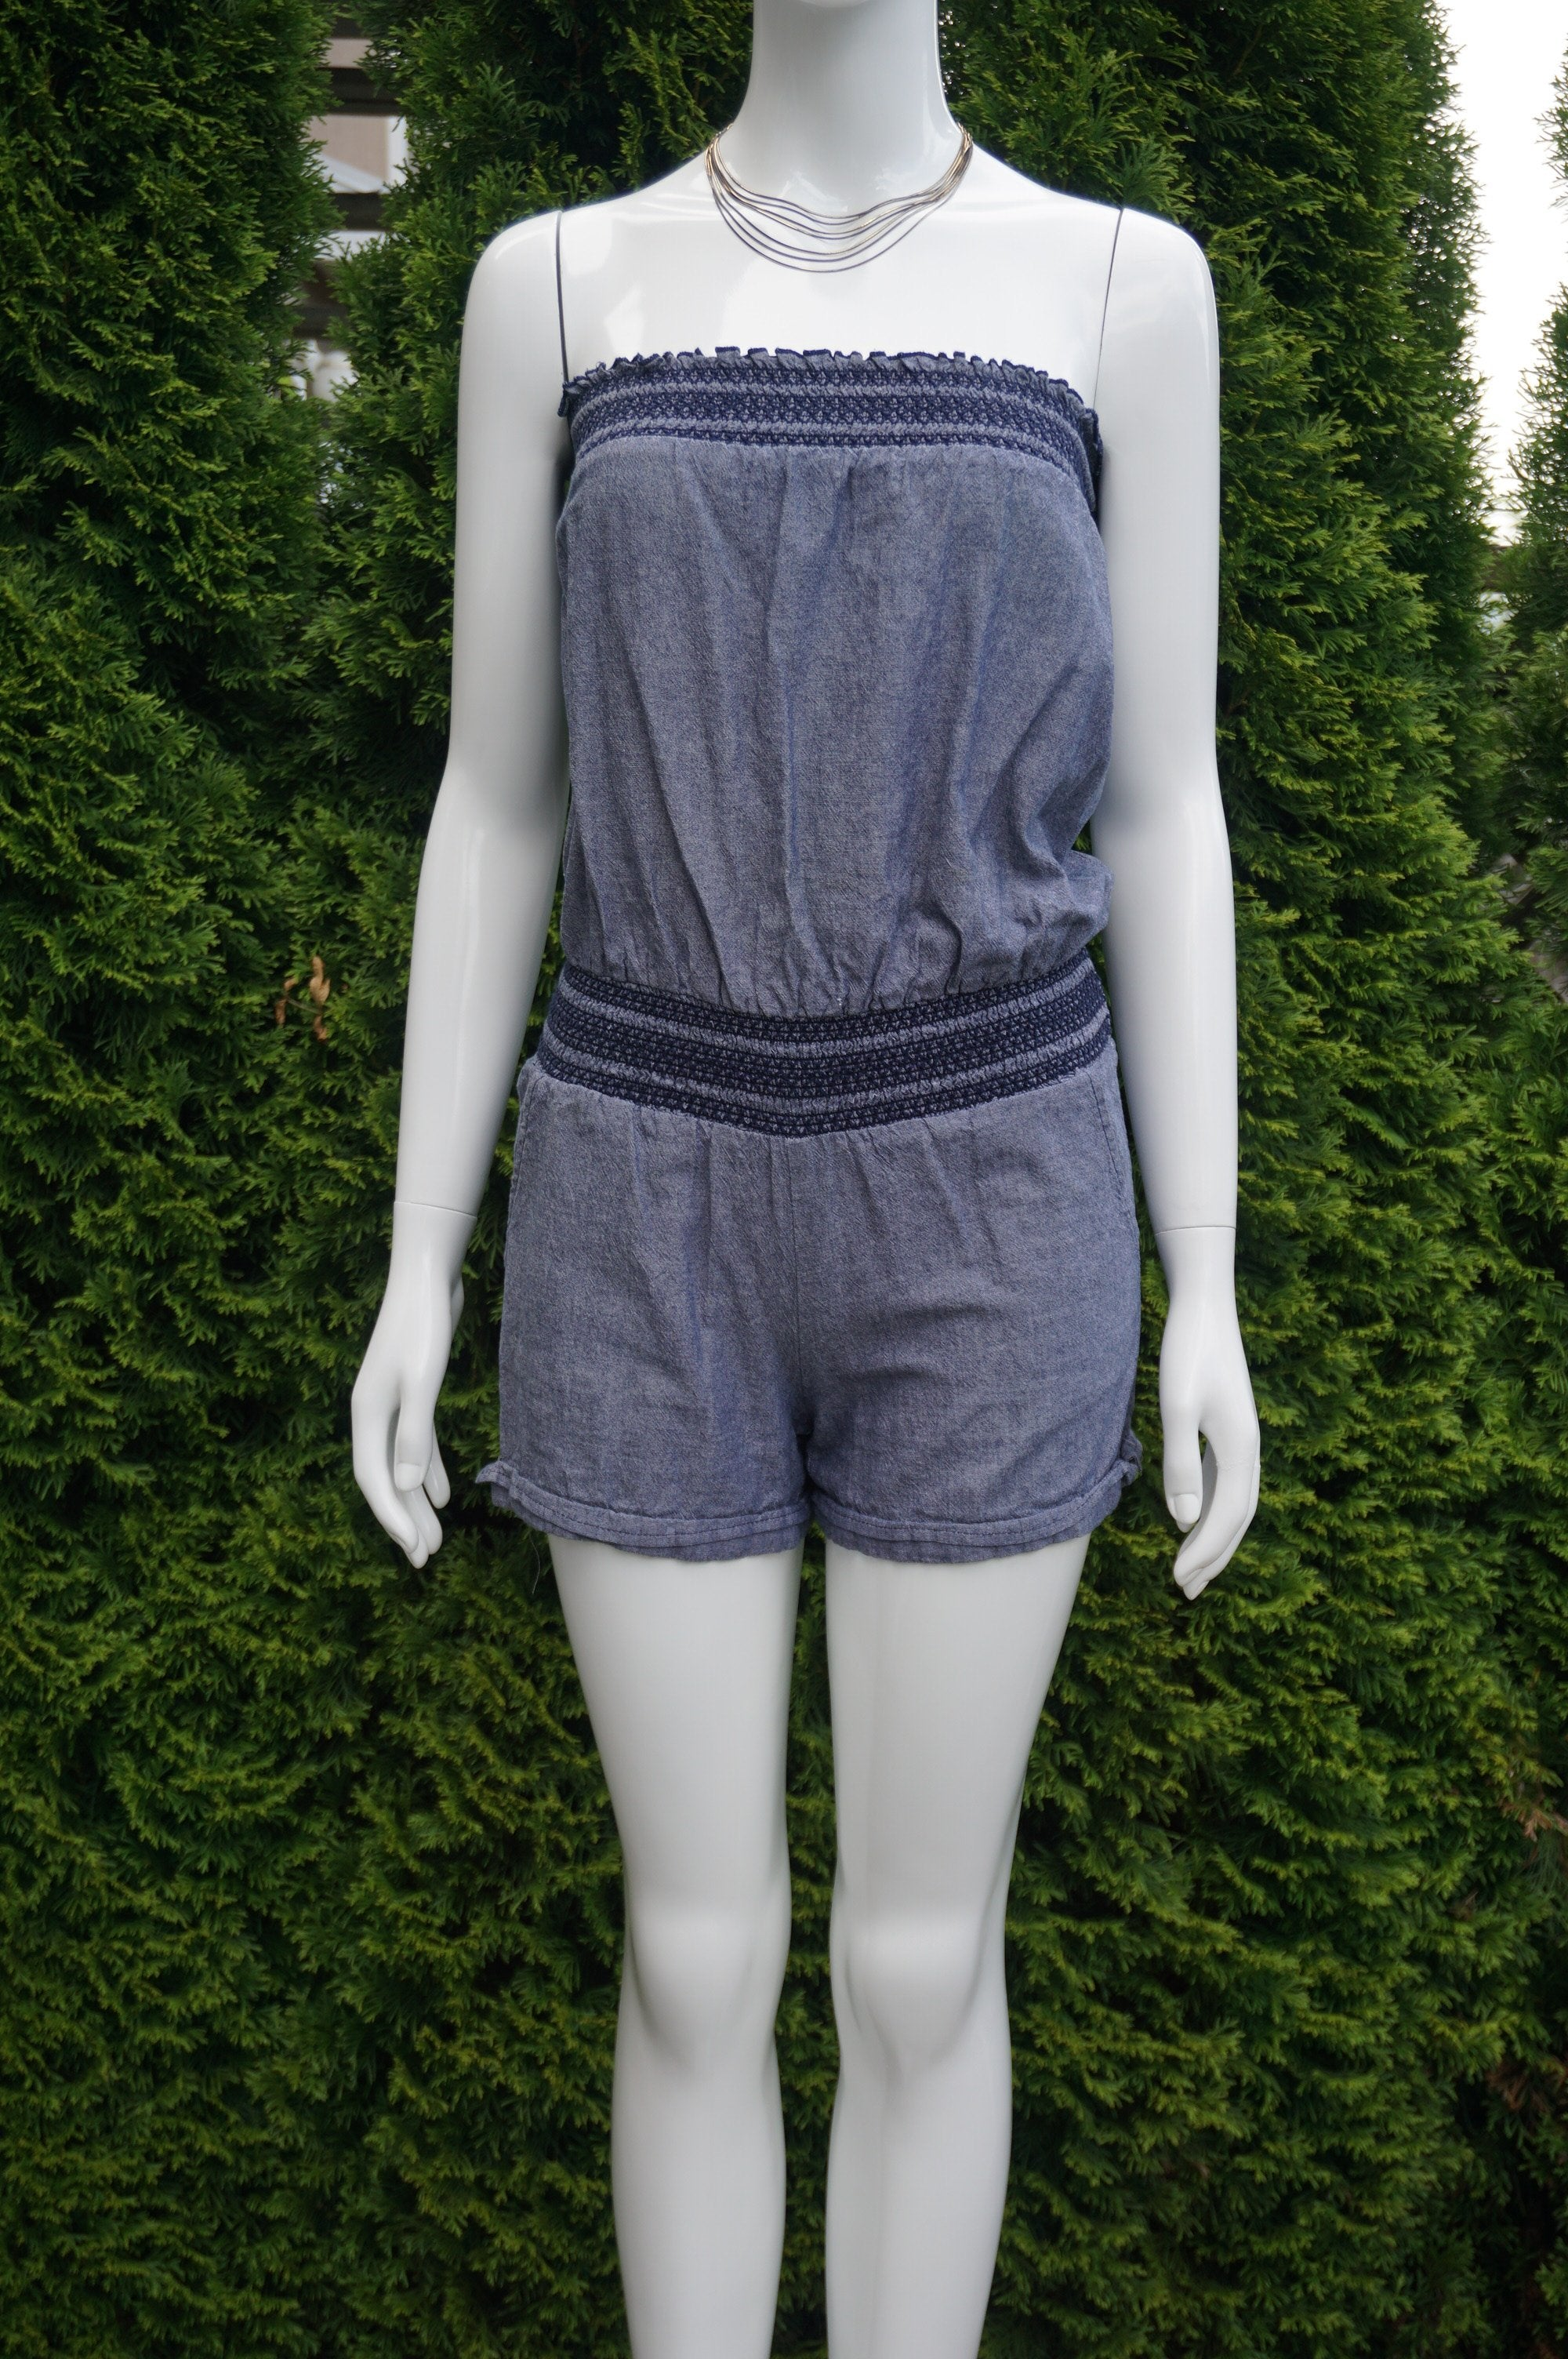 Honolua Wahine Strapless Elastic Tube Romper , Cute, sexy, and comfy - this jumpsuit is the whole package. Elastic top measures 24 inches, breast measures 36 inches, length 23 inches measured from top of breast. , Blue, women's Dresses & Rompers, women's Blue Dresses & Rompers, Honolua Wahine women's Dresses & Rompers, Jumpsuit, Romper,Spaghetti banded strap romper, banded tube romper, banded strapless jumpsuit